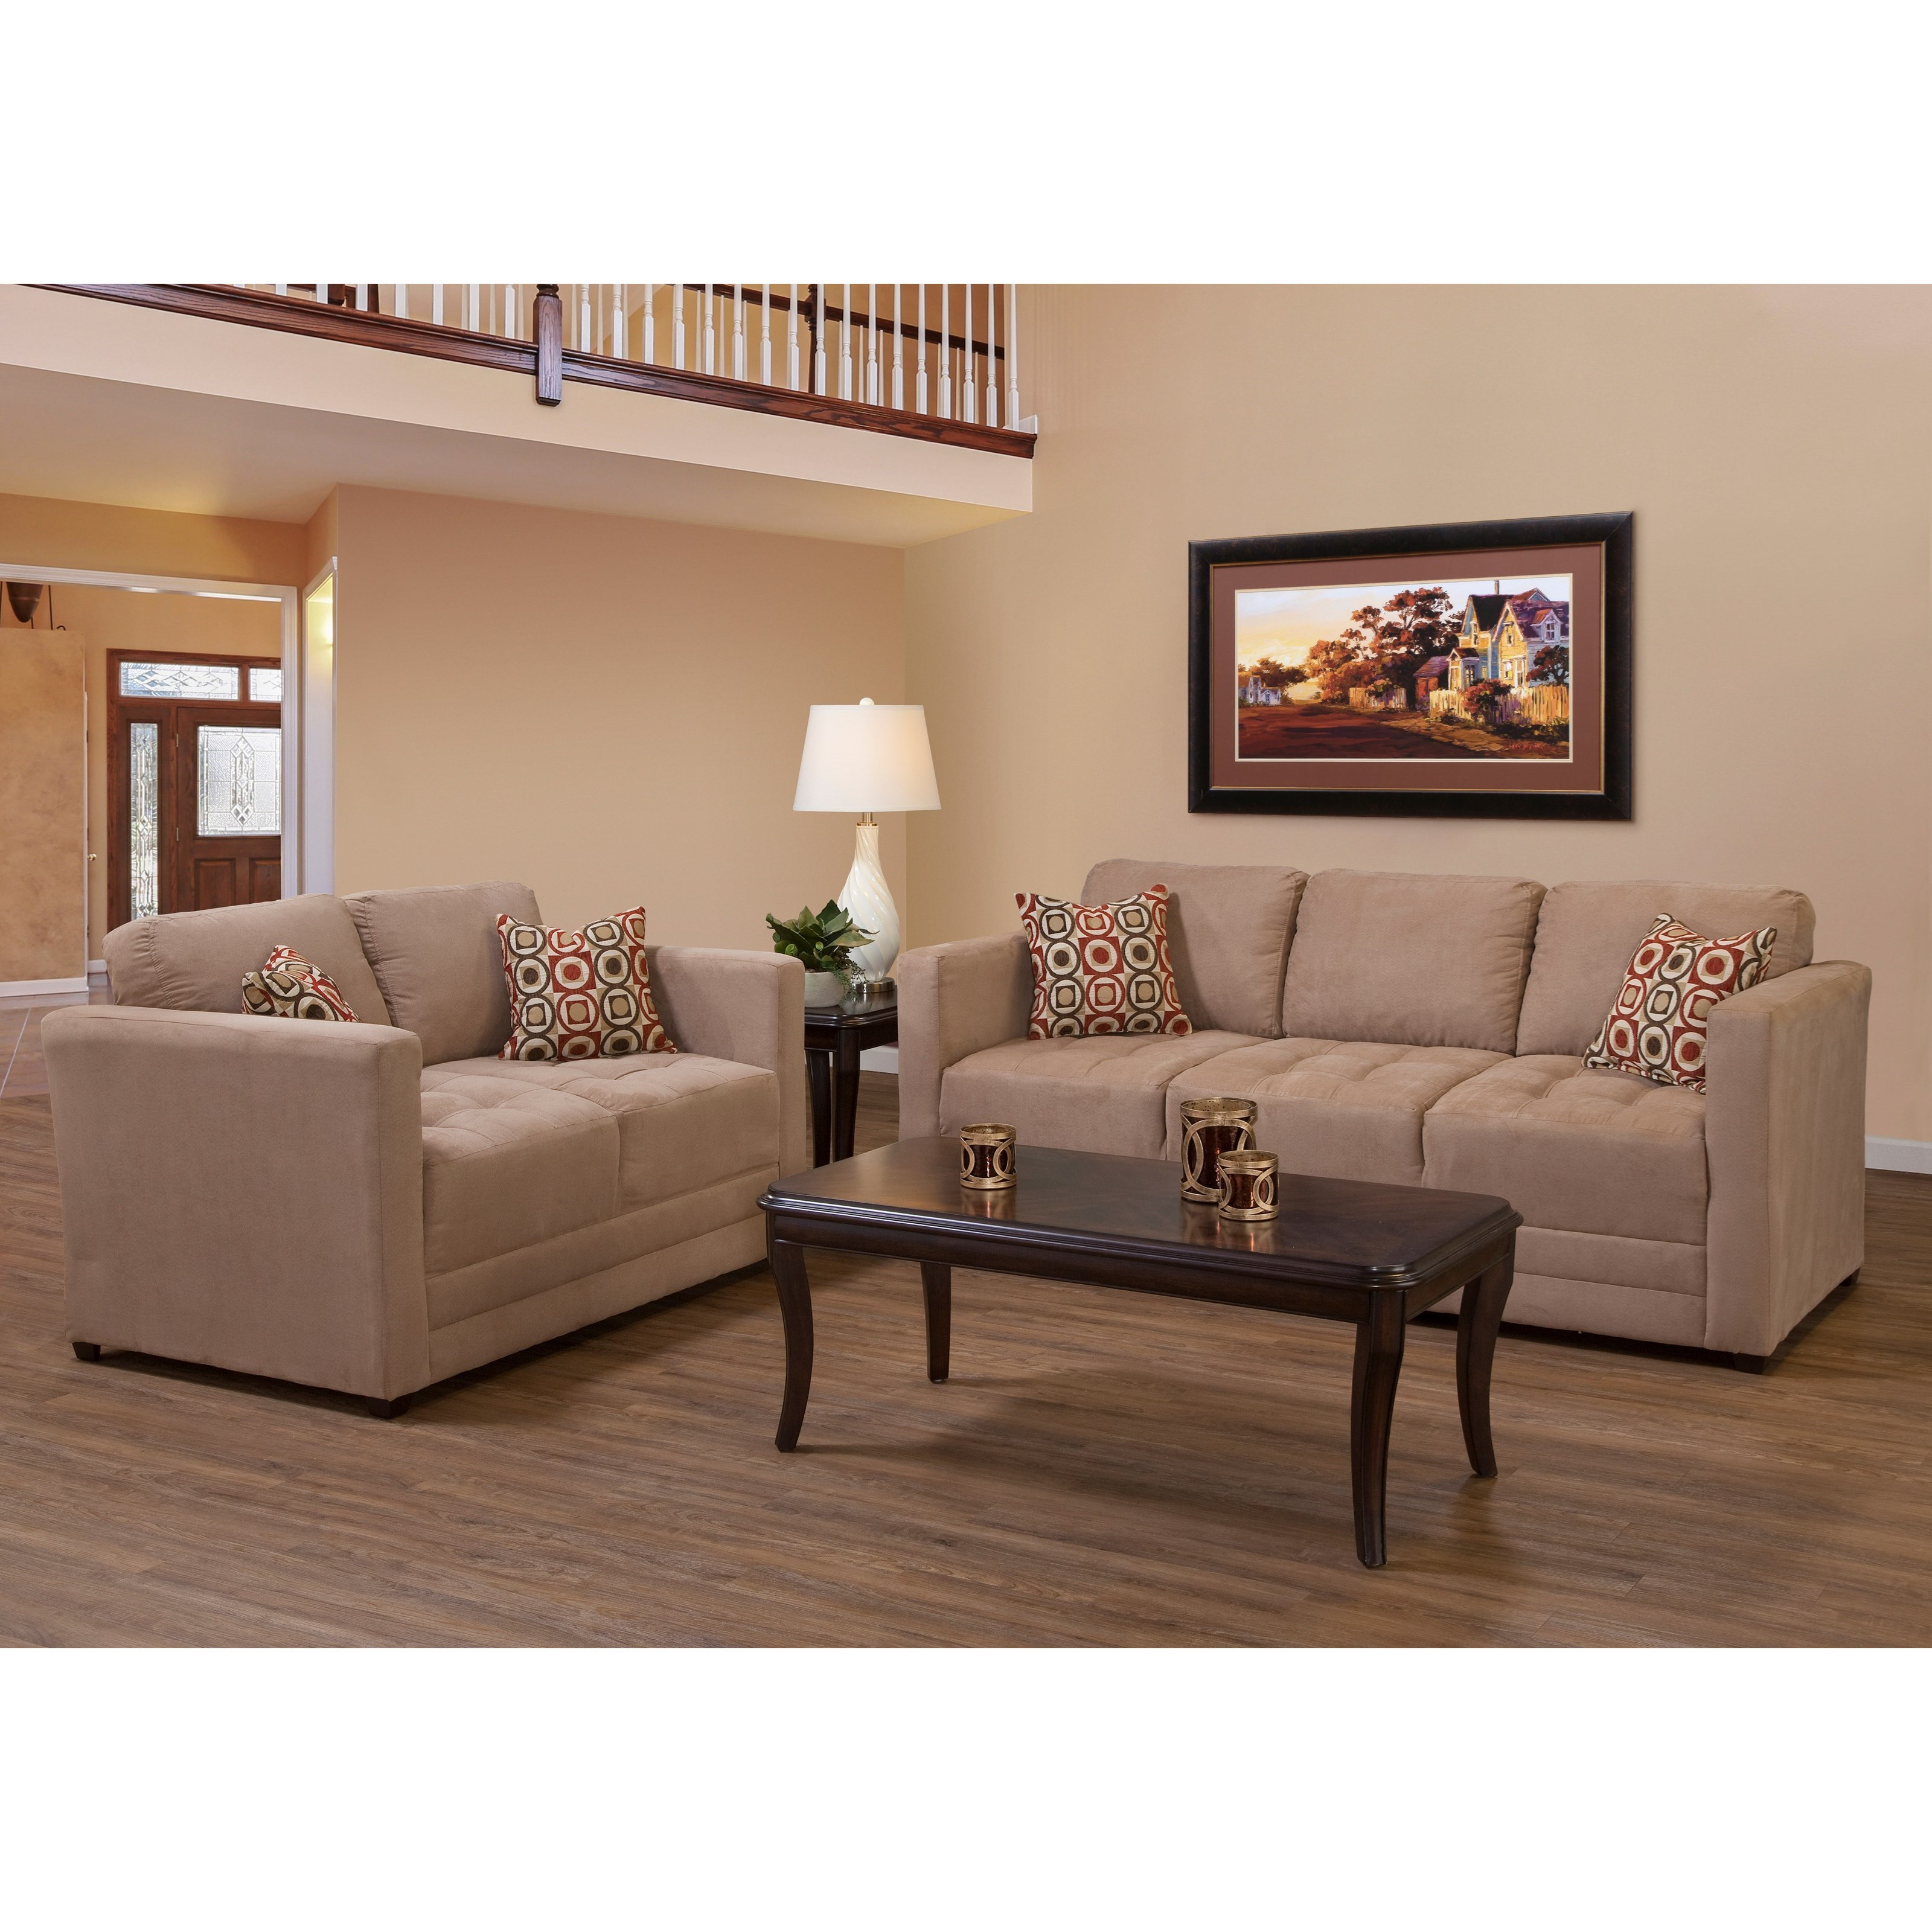 Brown Living Room Tables Sets: Serta Upholstery By Hughes Furniture 1085 Contemporary